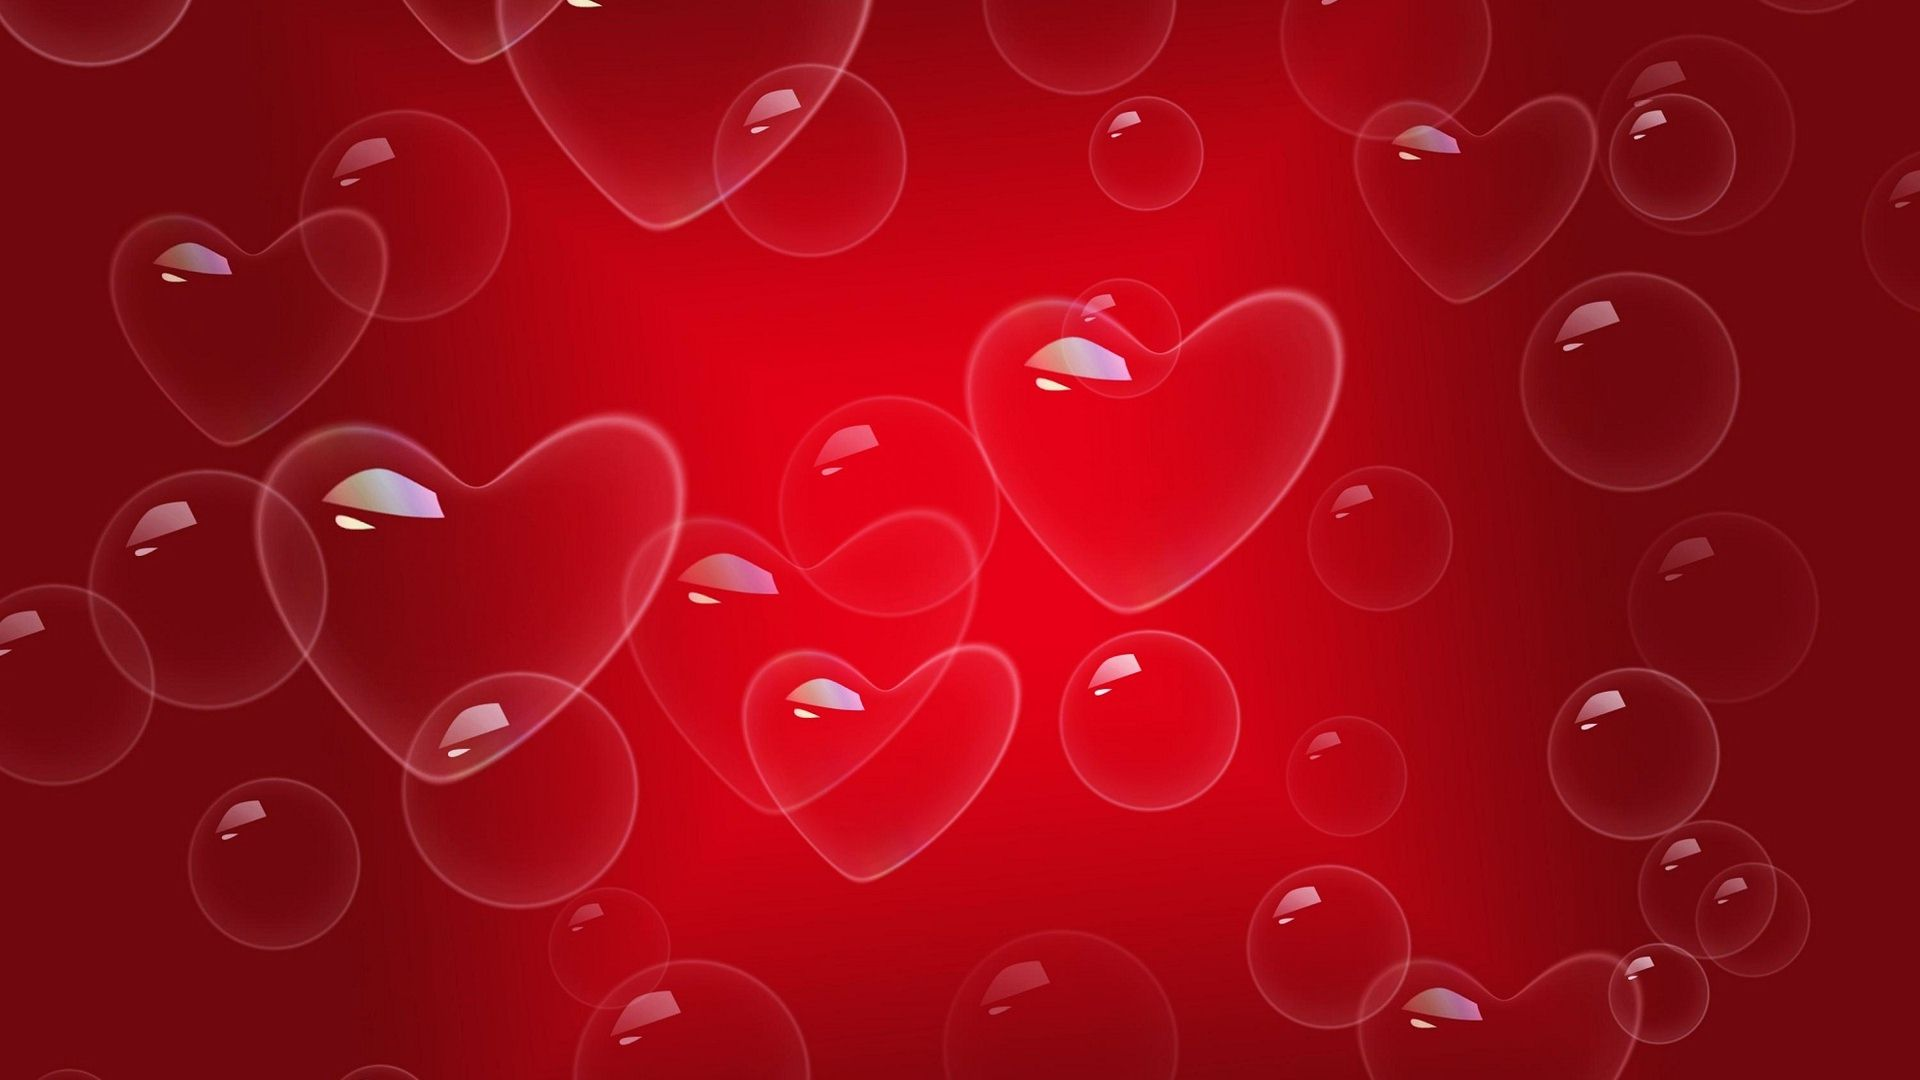 Red Love Heart Backgrounds 1920x1080